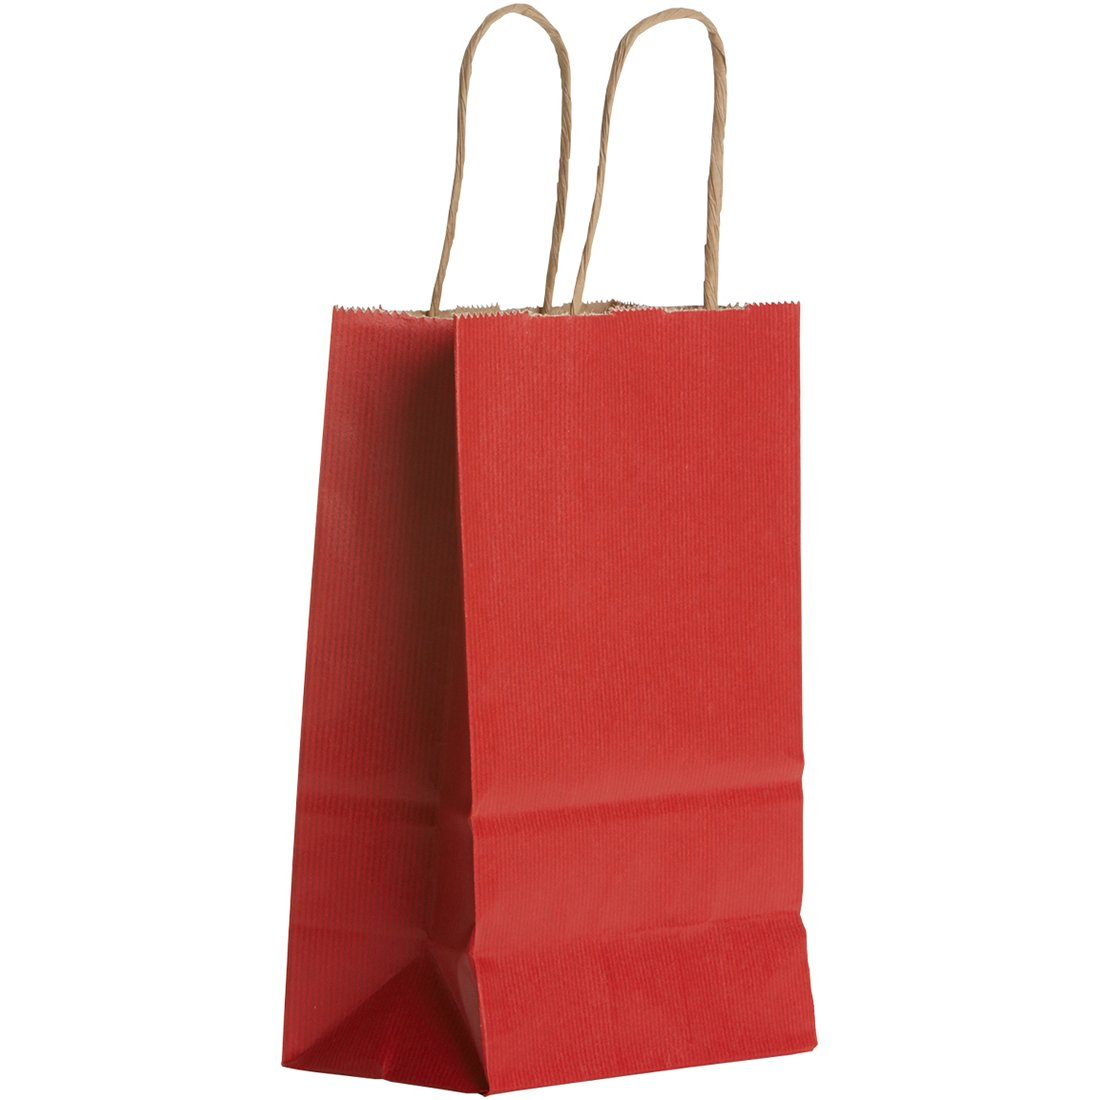 Jillson & Roberts Small Kraft Bags, Red